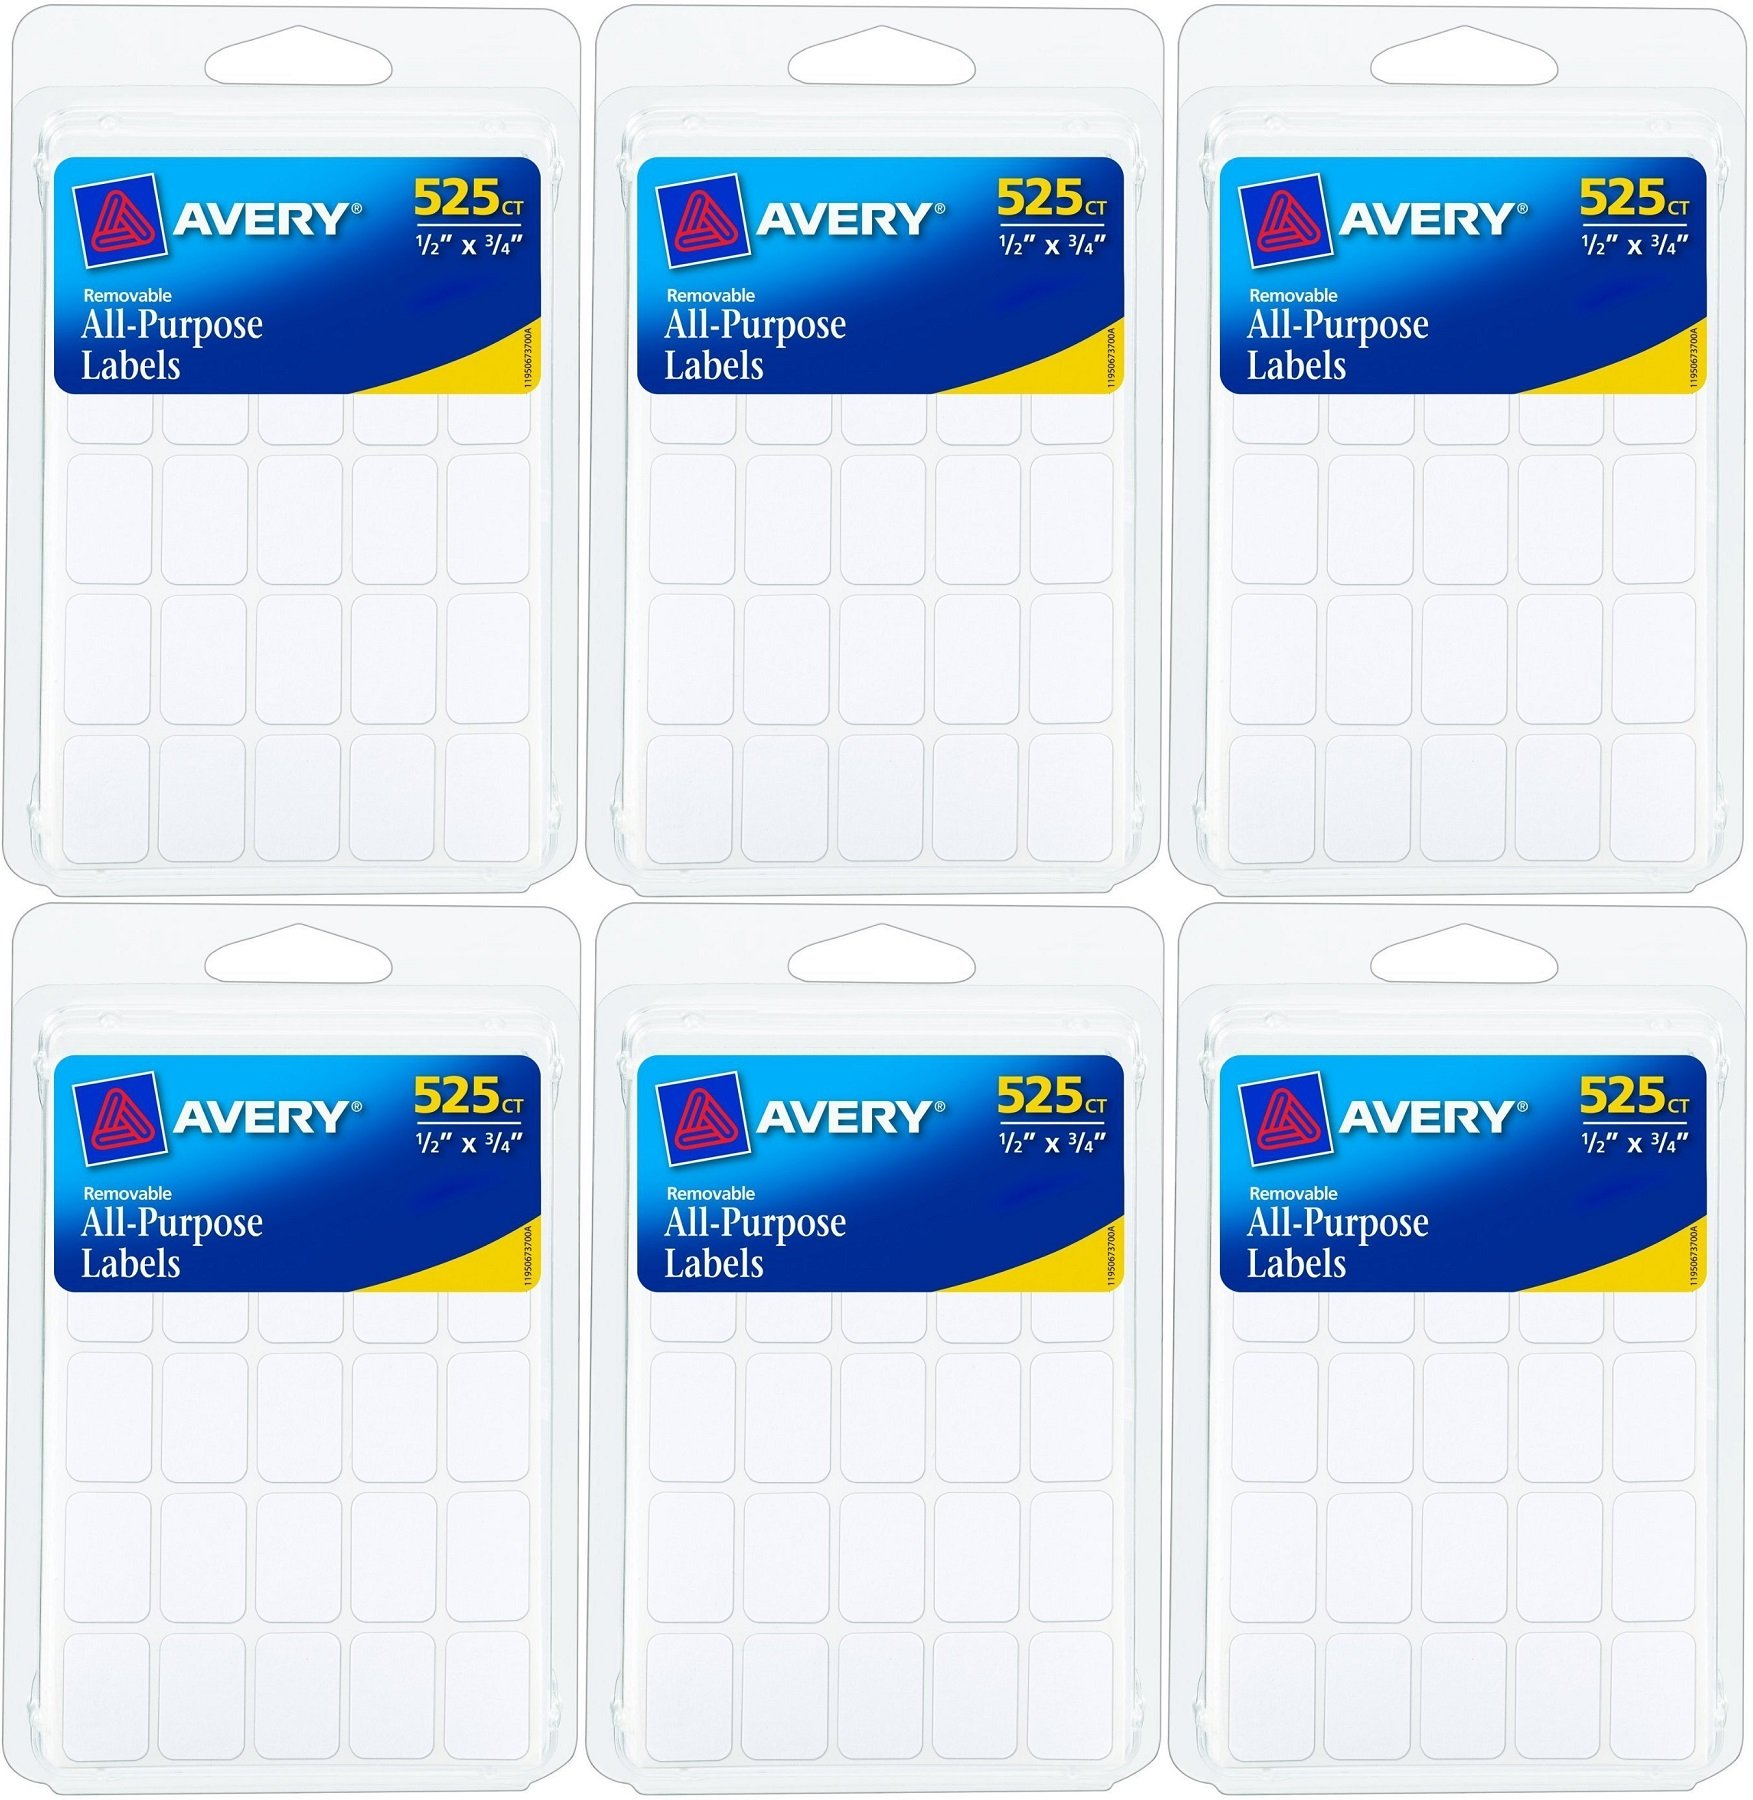 Avery Removable Rectangular Labels (6737) 0.5 X 0.75 Inches, White, 525 Count (Pack of 6) Total 3150 Labels